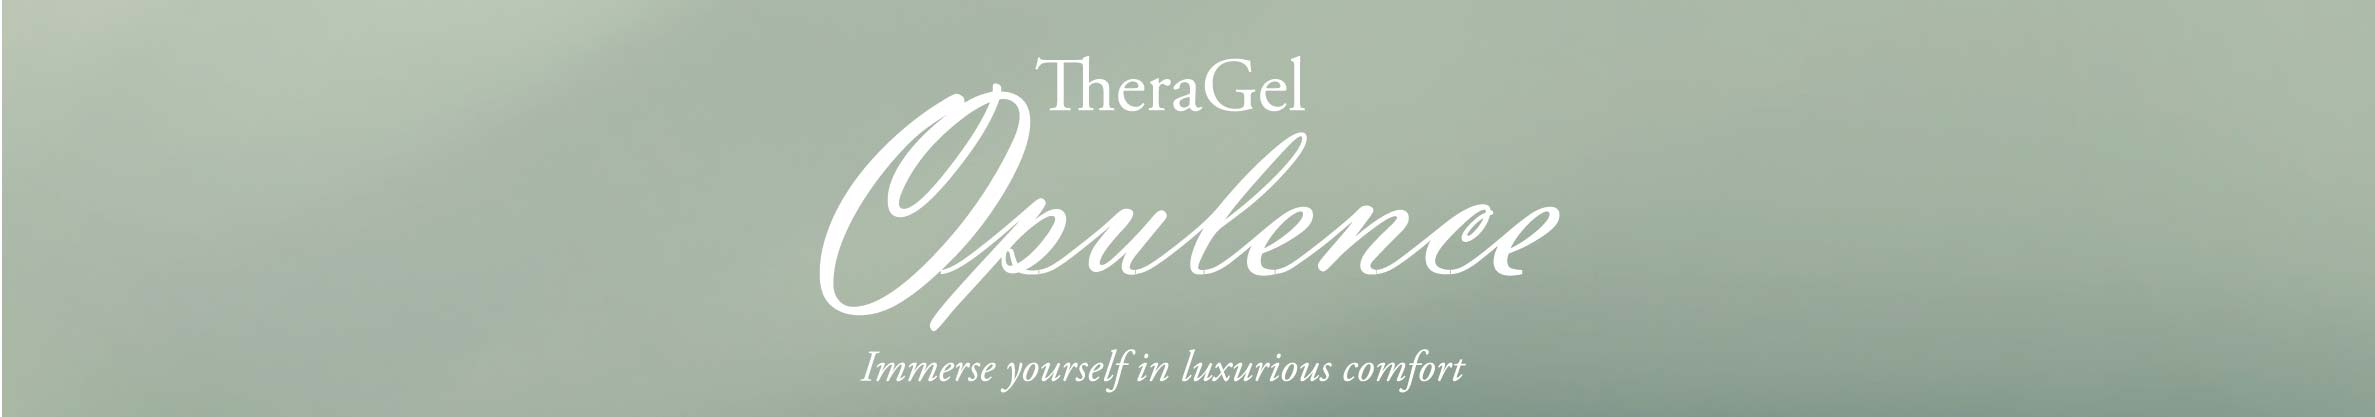 Mattress Resources Theragel Opulence Therapedic Mattress - Header